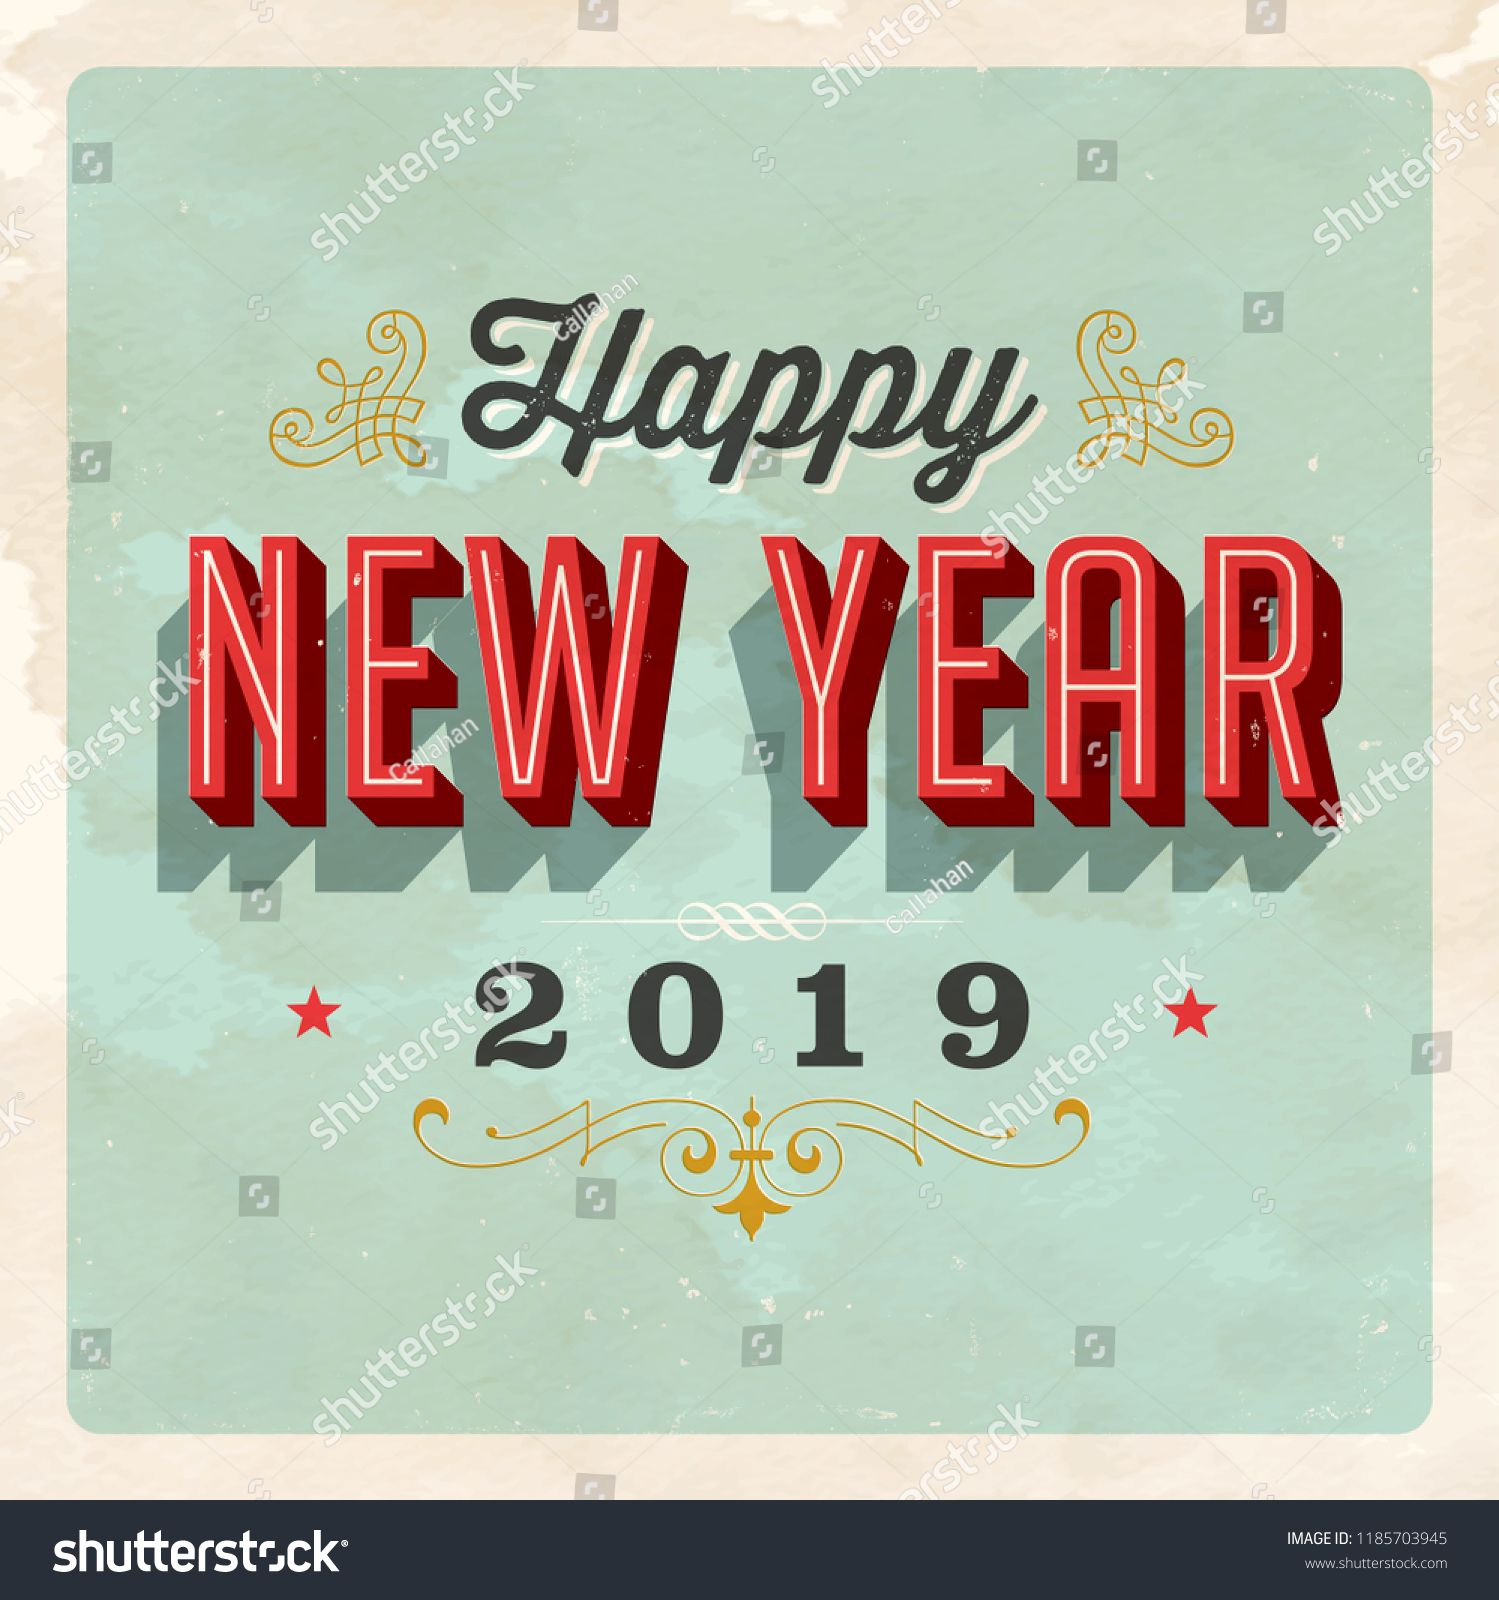 Vintage Vector 2019 Happy New Year Card With A Realistic Used And Worn Effect That Can Be Easily Remove Happy New Year Cards Happy New Year 2015 New Year Card